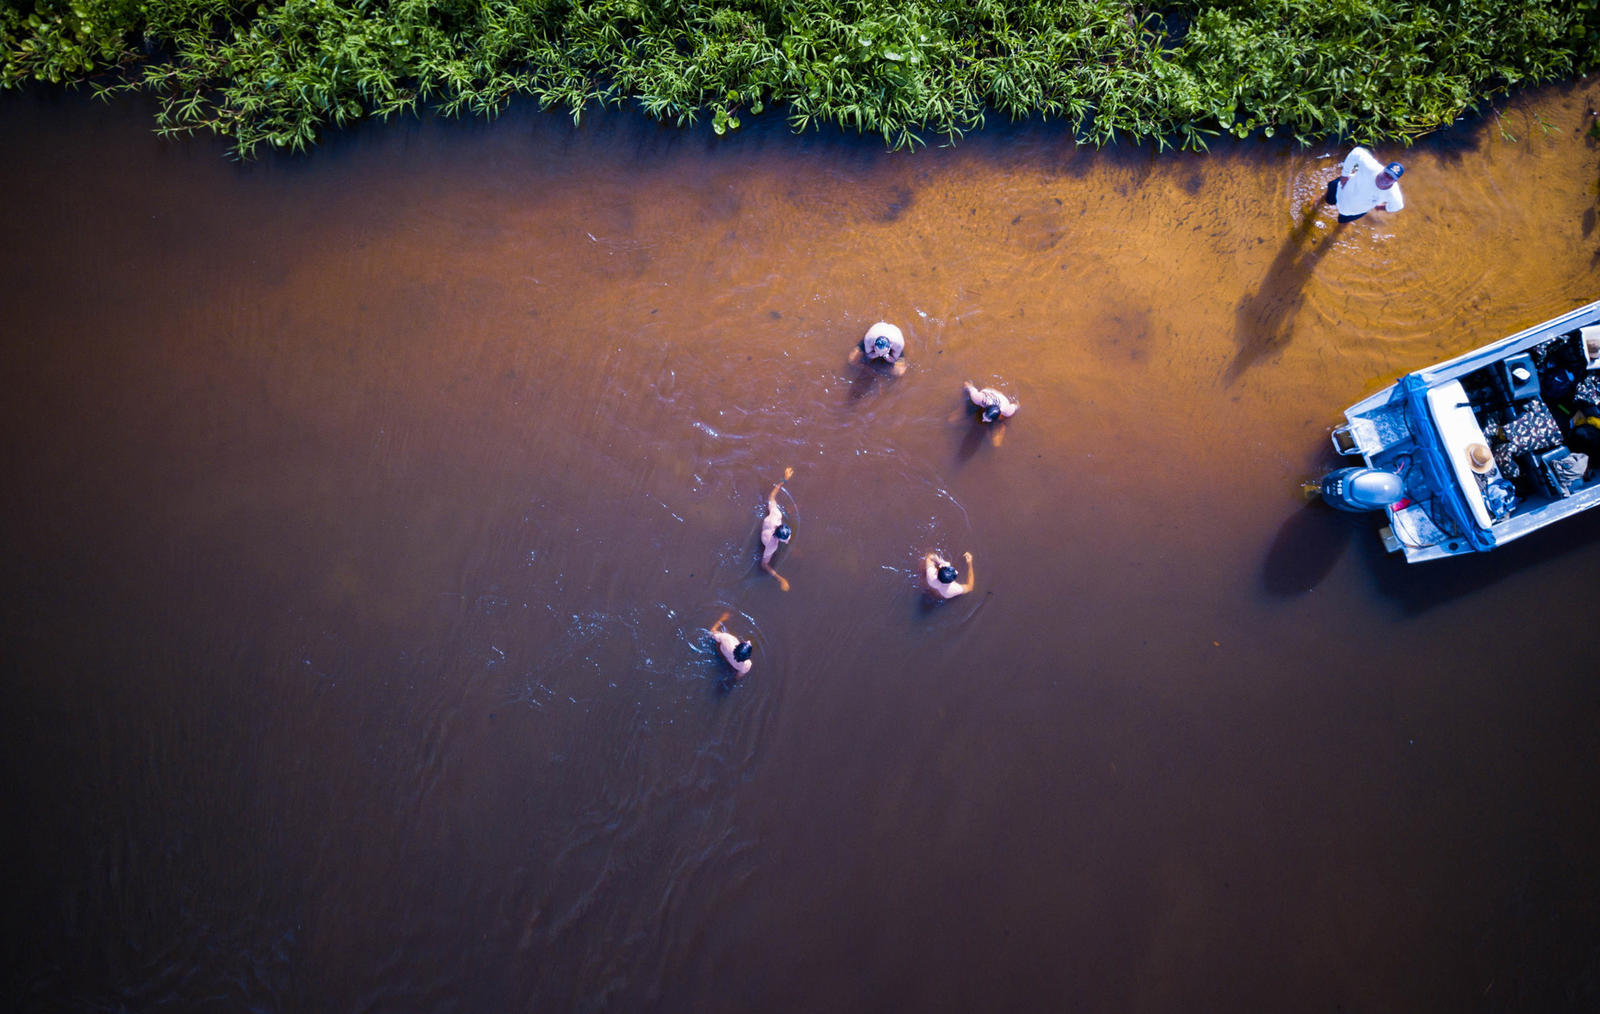 People wading in a river